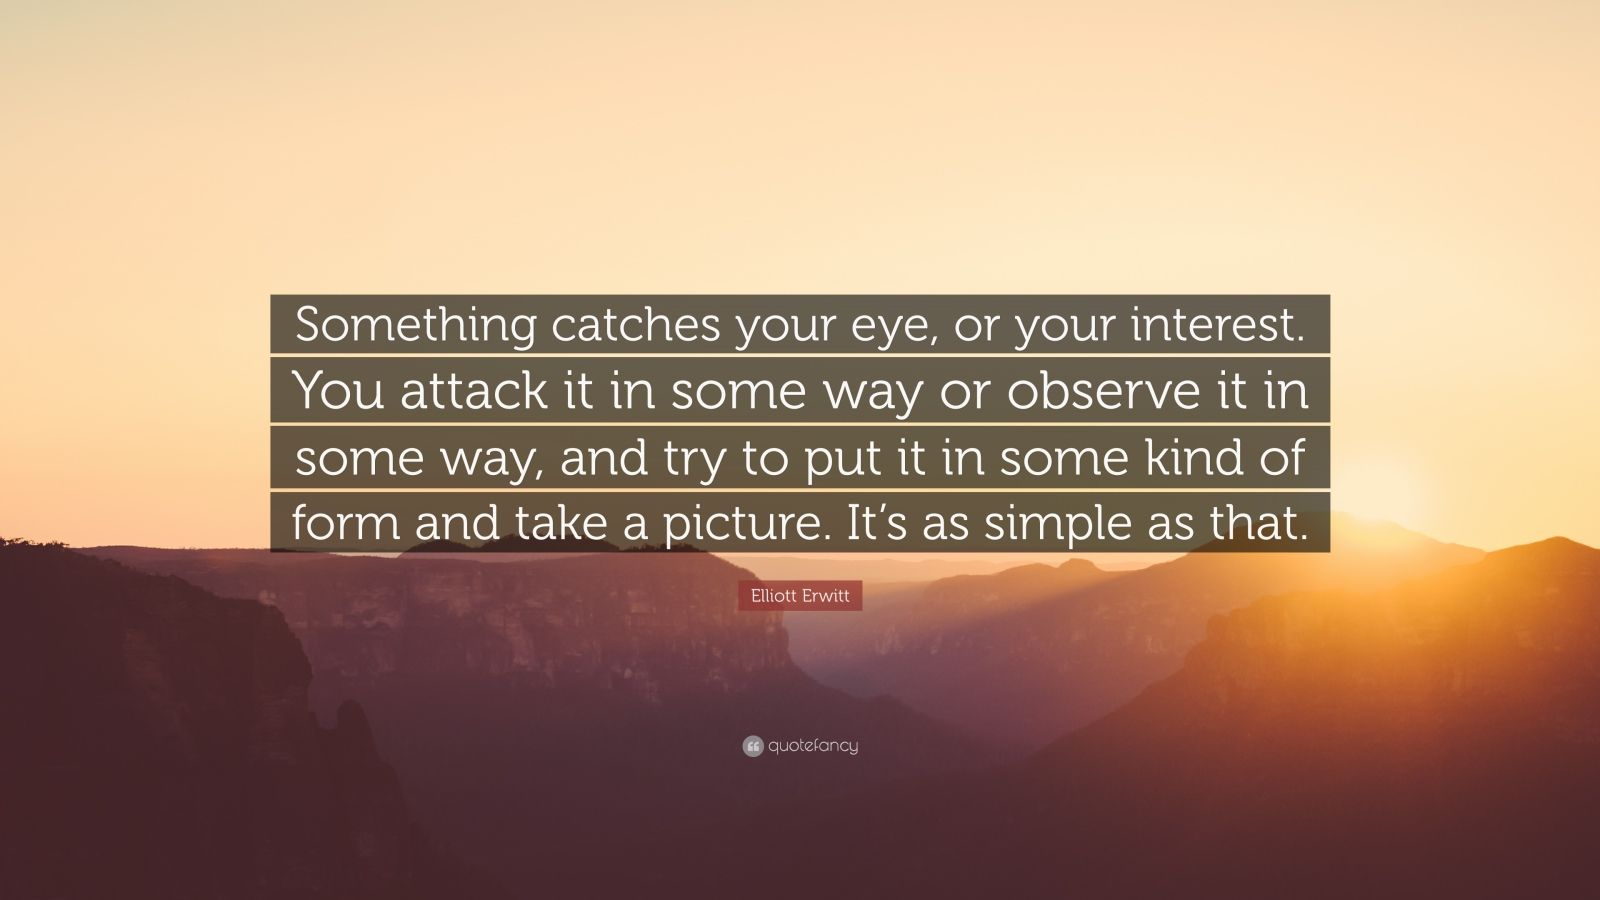 """Elliott Erwitt Quote: """"Something catches your eye, or your interest. You attack it in some way or observe it in some way, and try to put it in some kind of form and take a picture. It's as simple as that."""""""